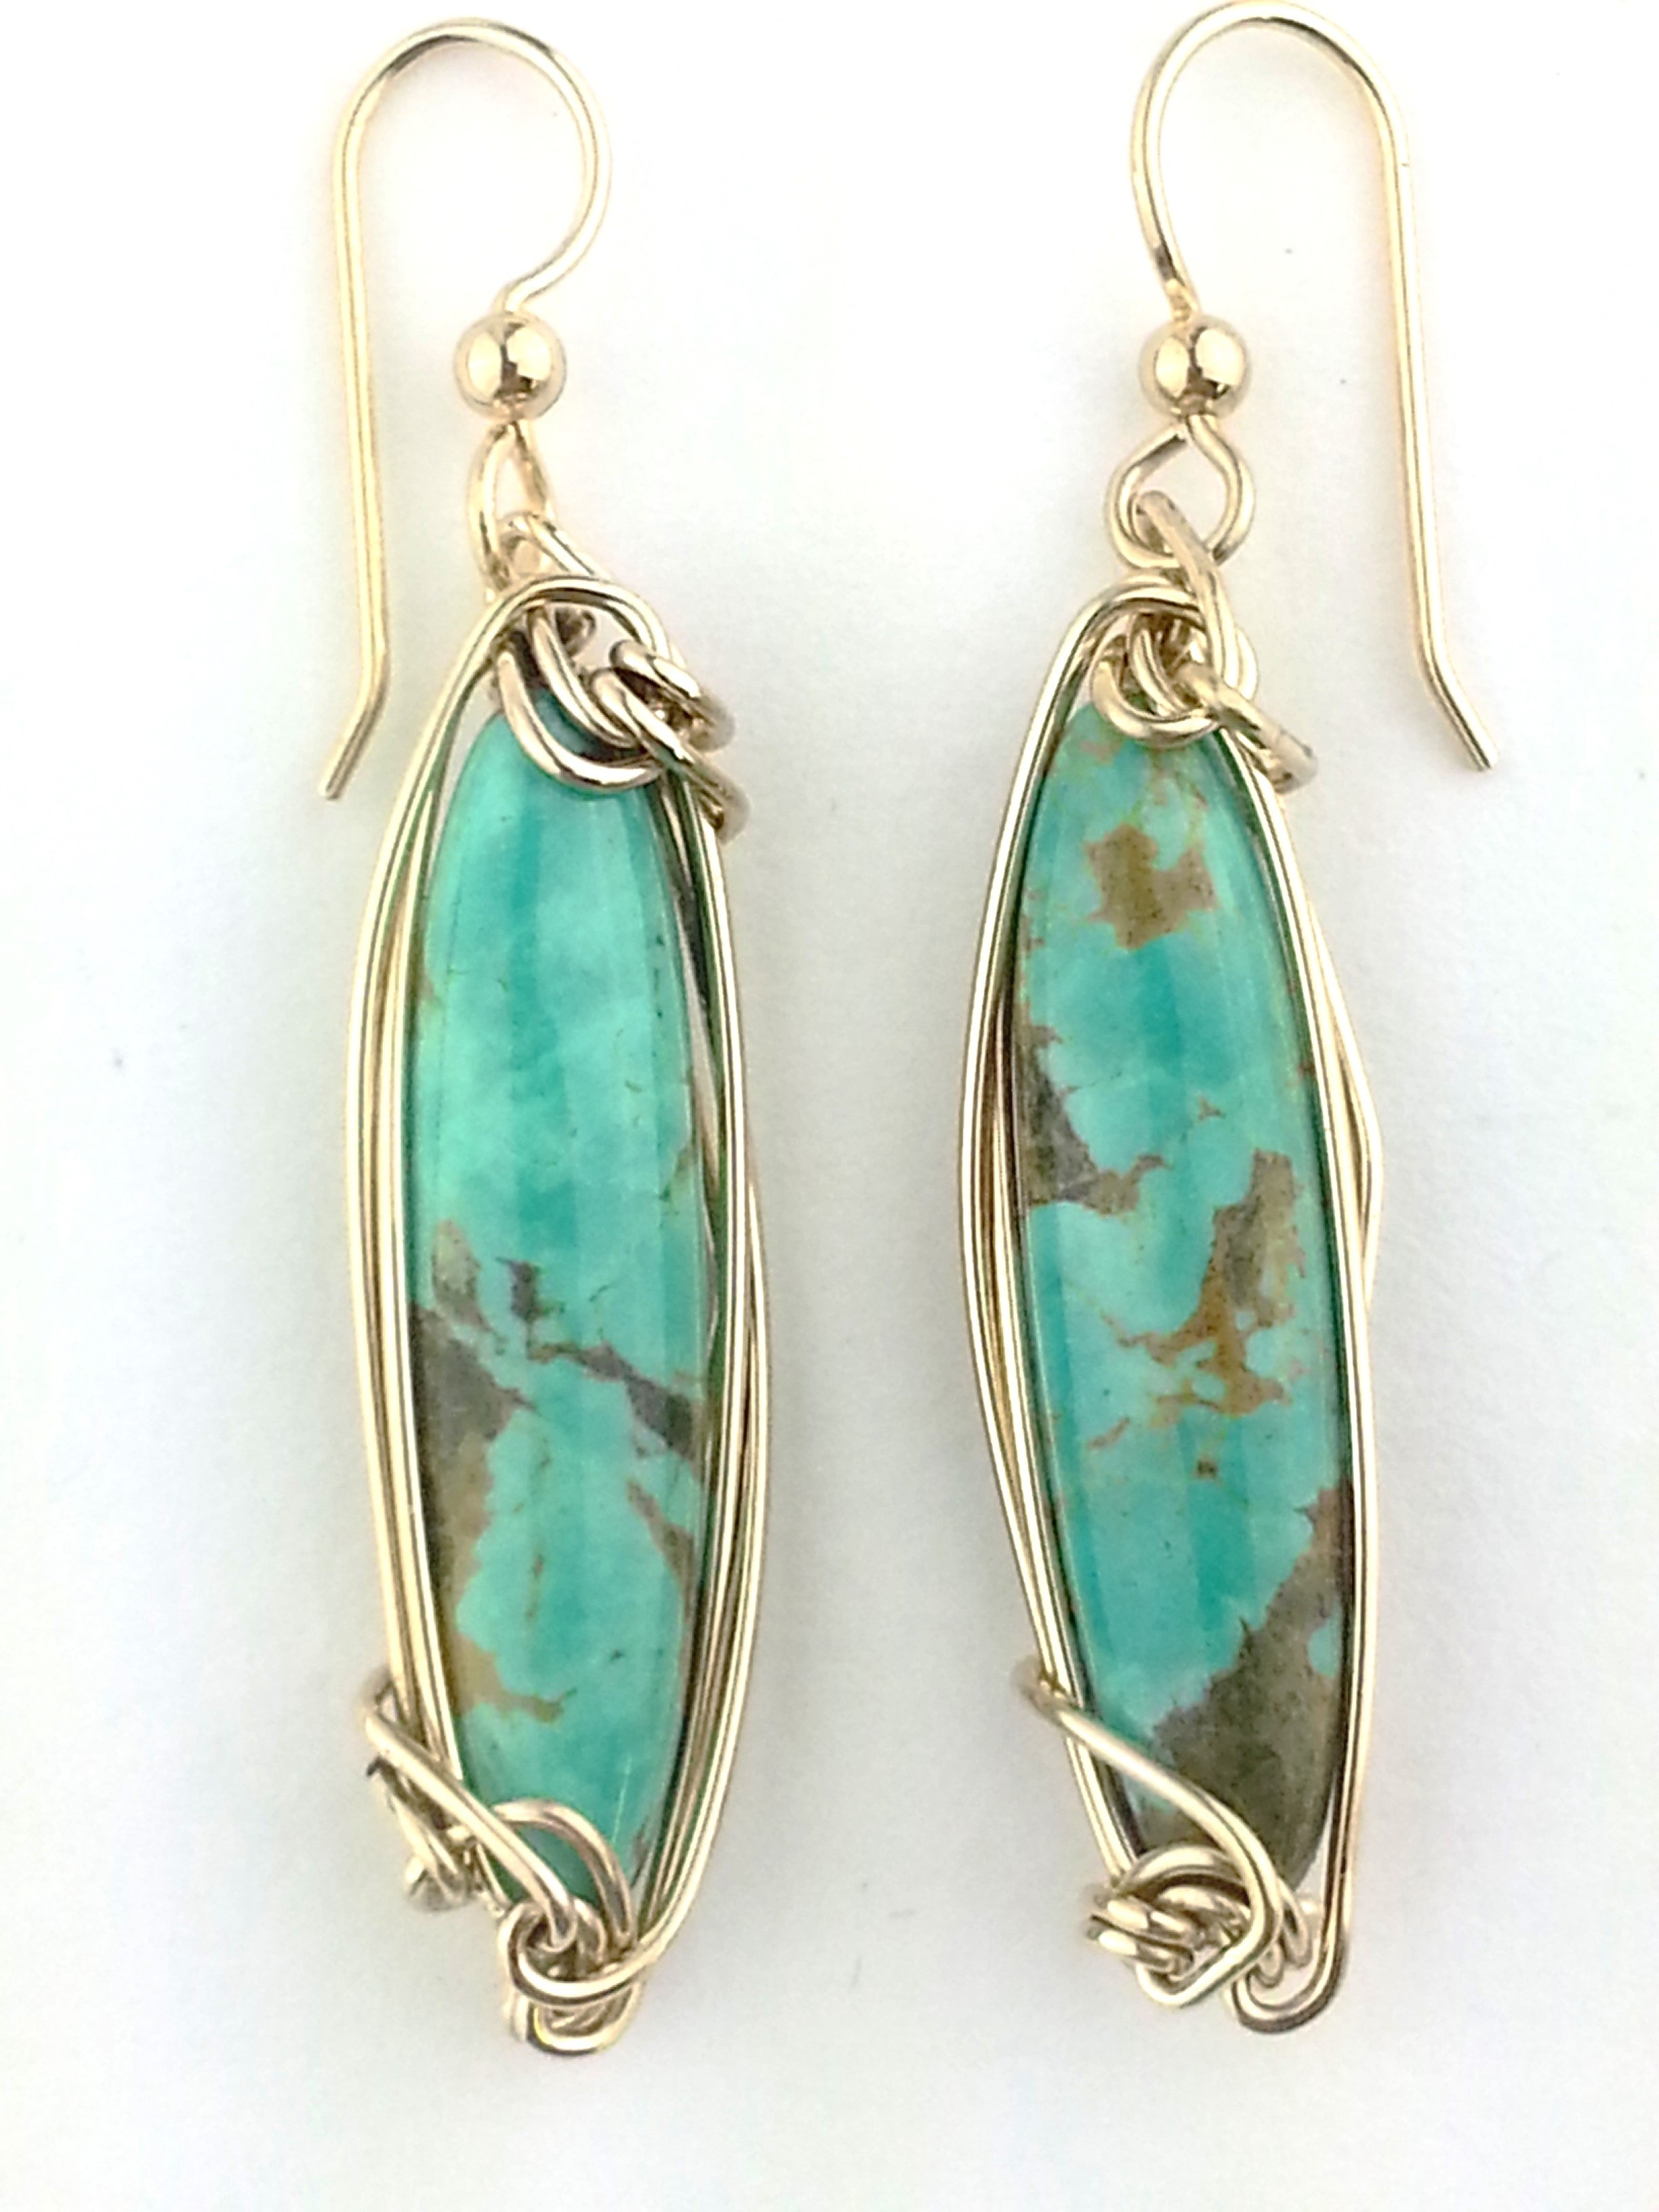 slender light green turquoise earrings by Earth in Wire made in America